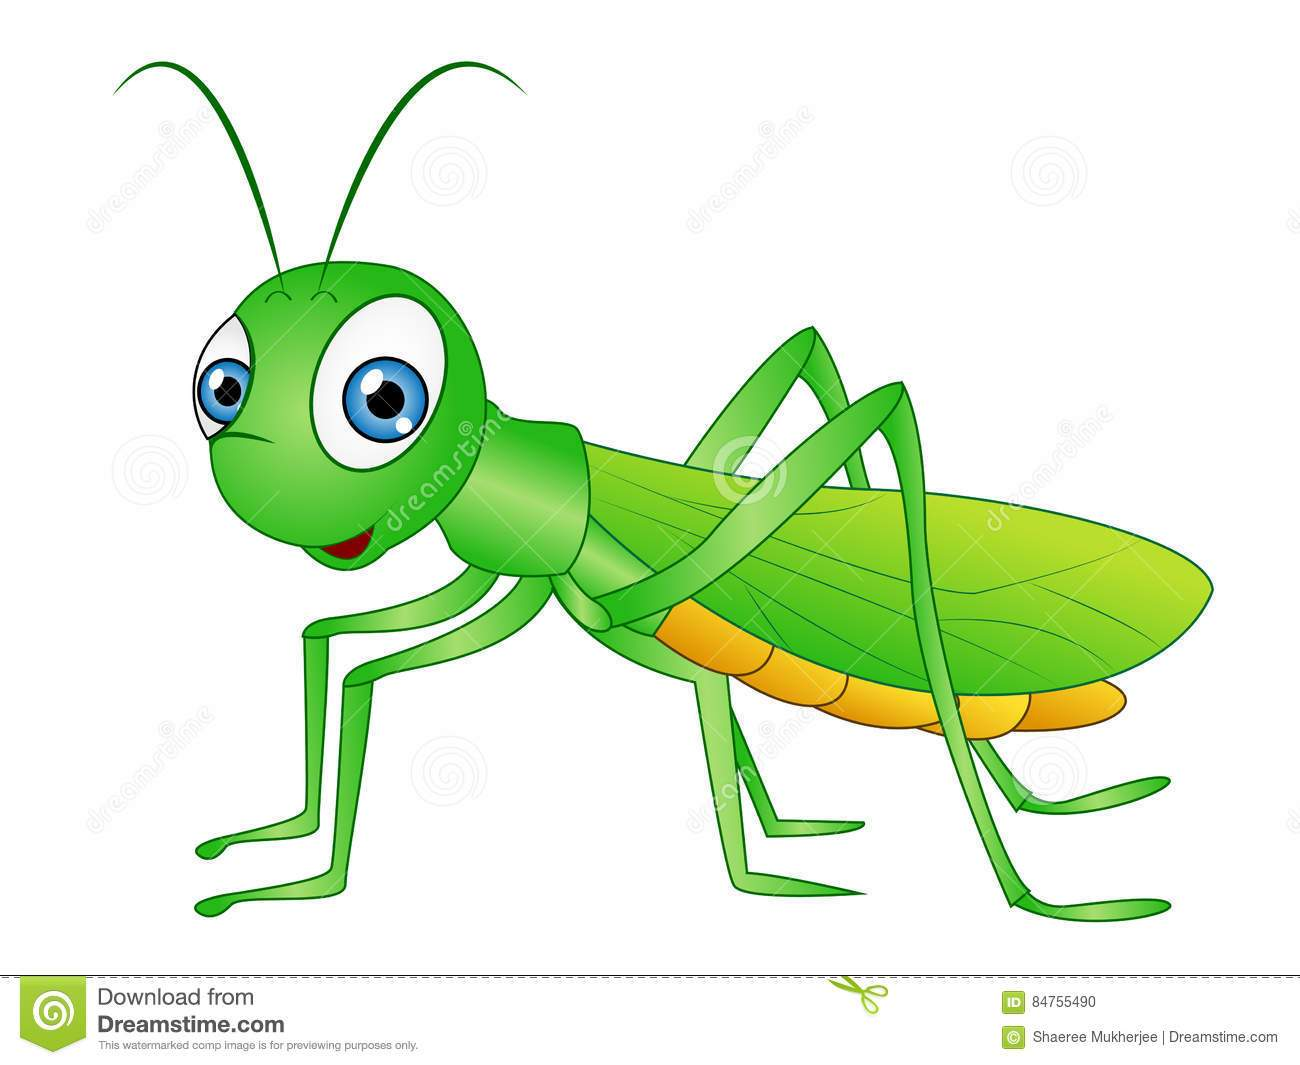 Grasshoppers clipart clip art free stock Grasshoppers clipart 4 » Clipart Portal clip art free stock